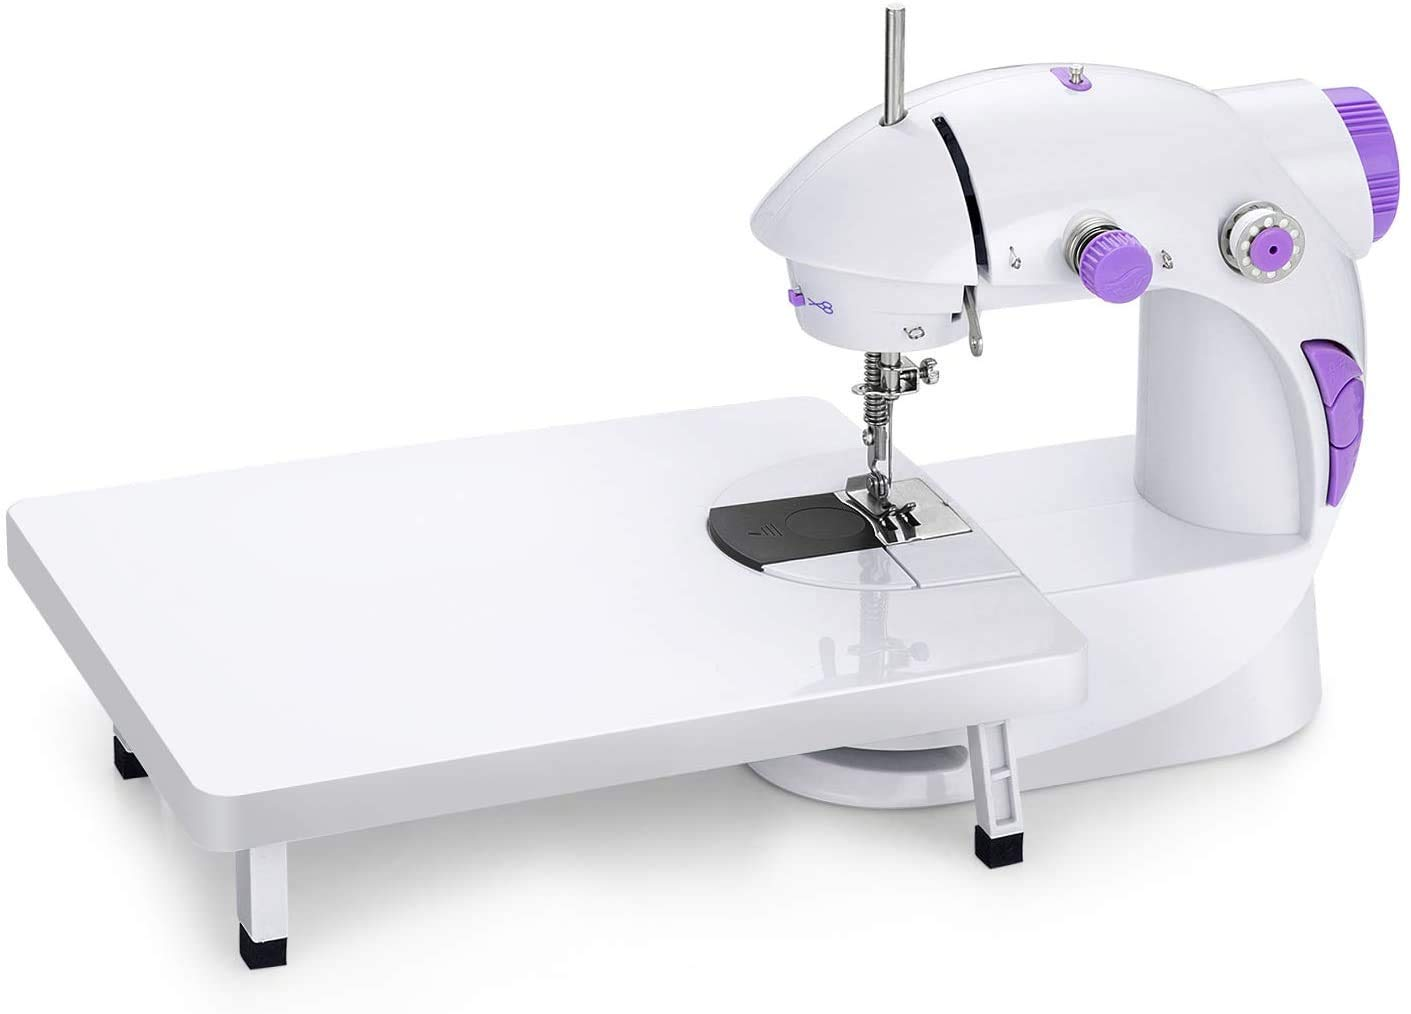 Desktop Household Sewing Machine in India